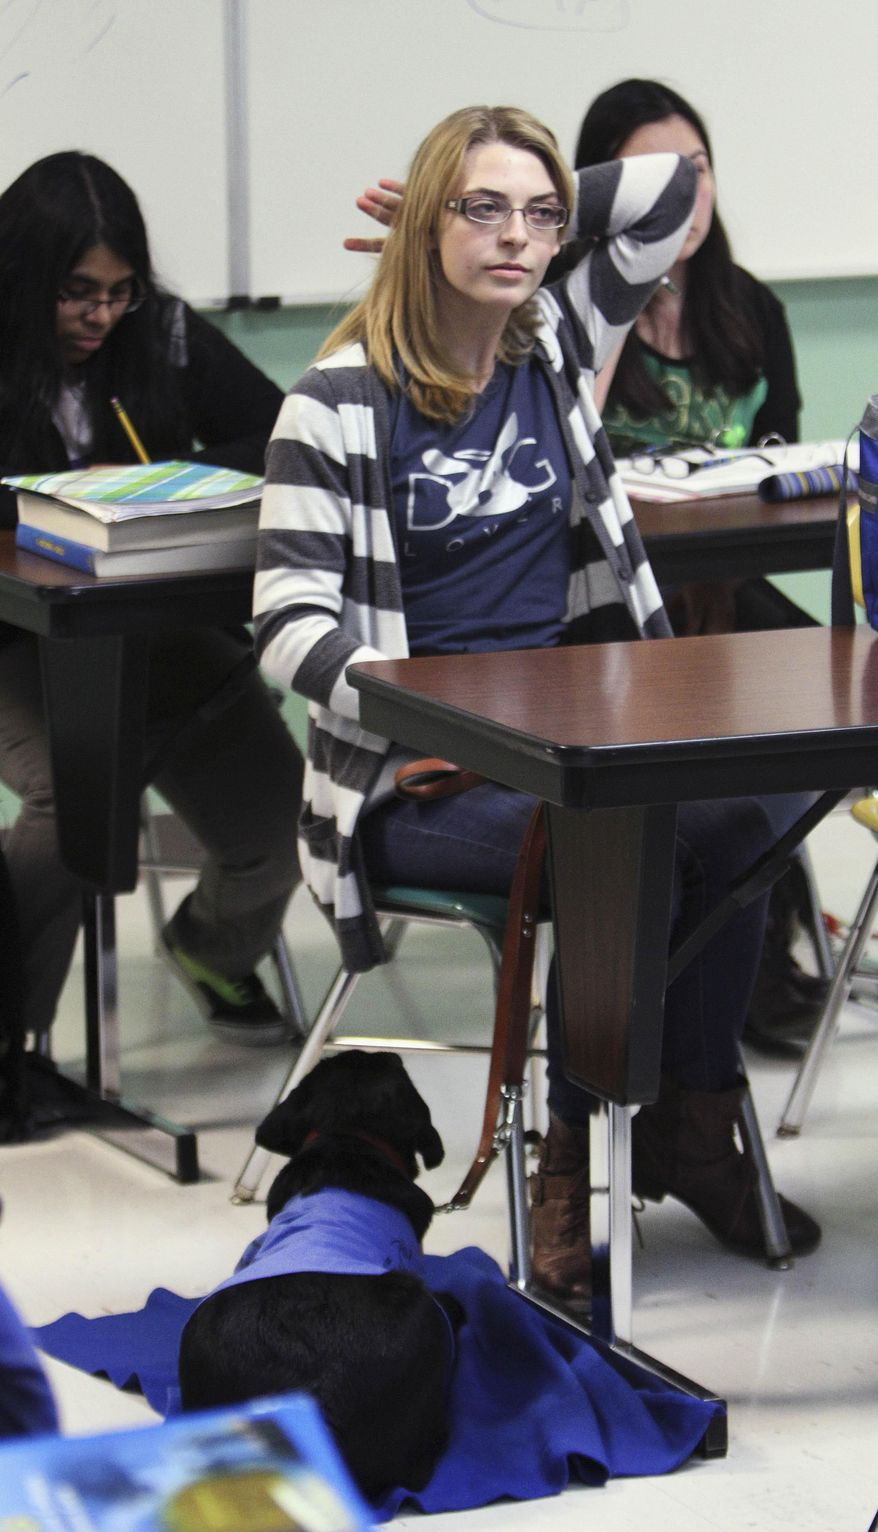 In this March 17, 2014 photo,16-year-old Abbey Perkowitz sits in class with 5-month-old Bailey, a service dog she is training at Grayslake Central High School in Grayslake, Ill. Perkowitz said the school serves as a valuable training ground for the animal she received from the nonprofit Leader Dogs for the Blind in Rochester Hills, Mich. (AP Photo/Daily Herald, Steve Lundy)  MANDATORY CREDIT, MAGS OUT